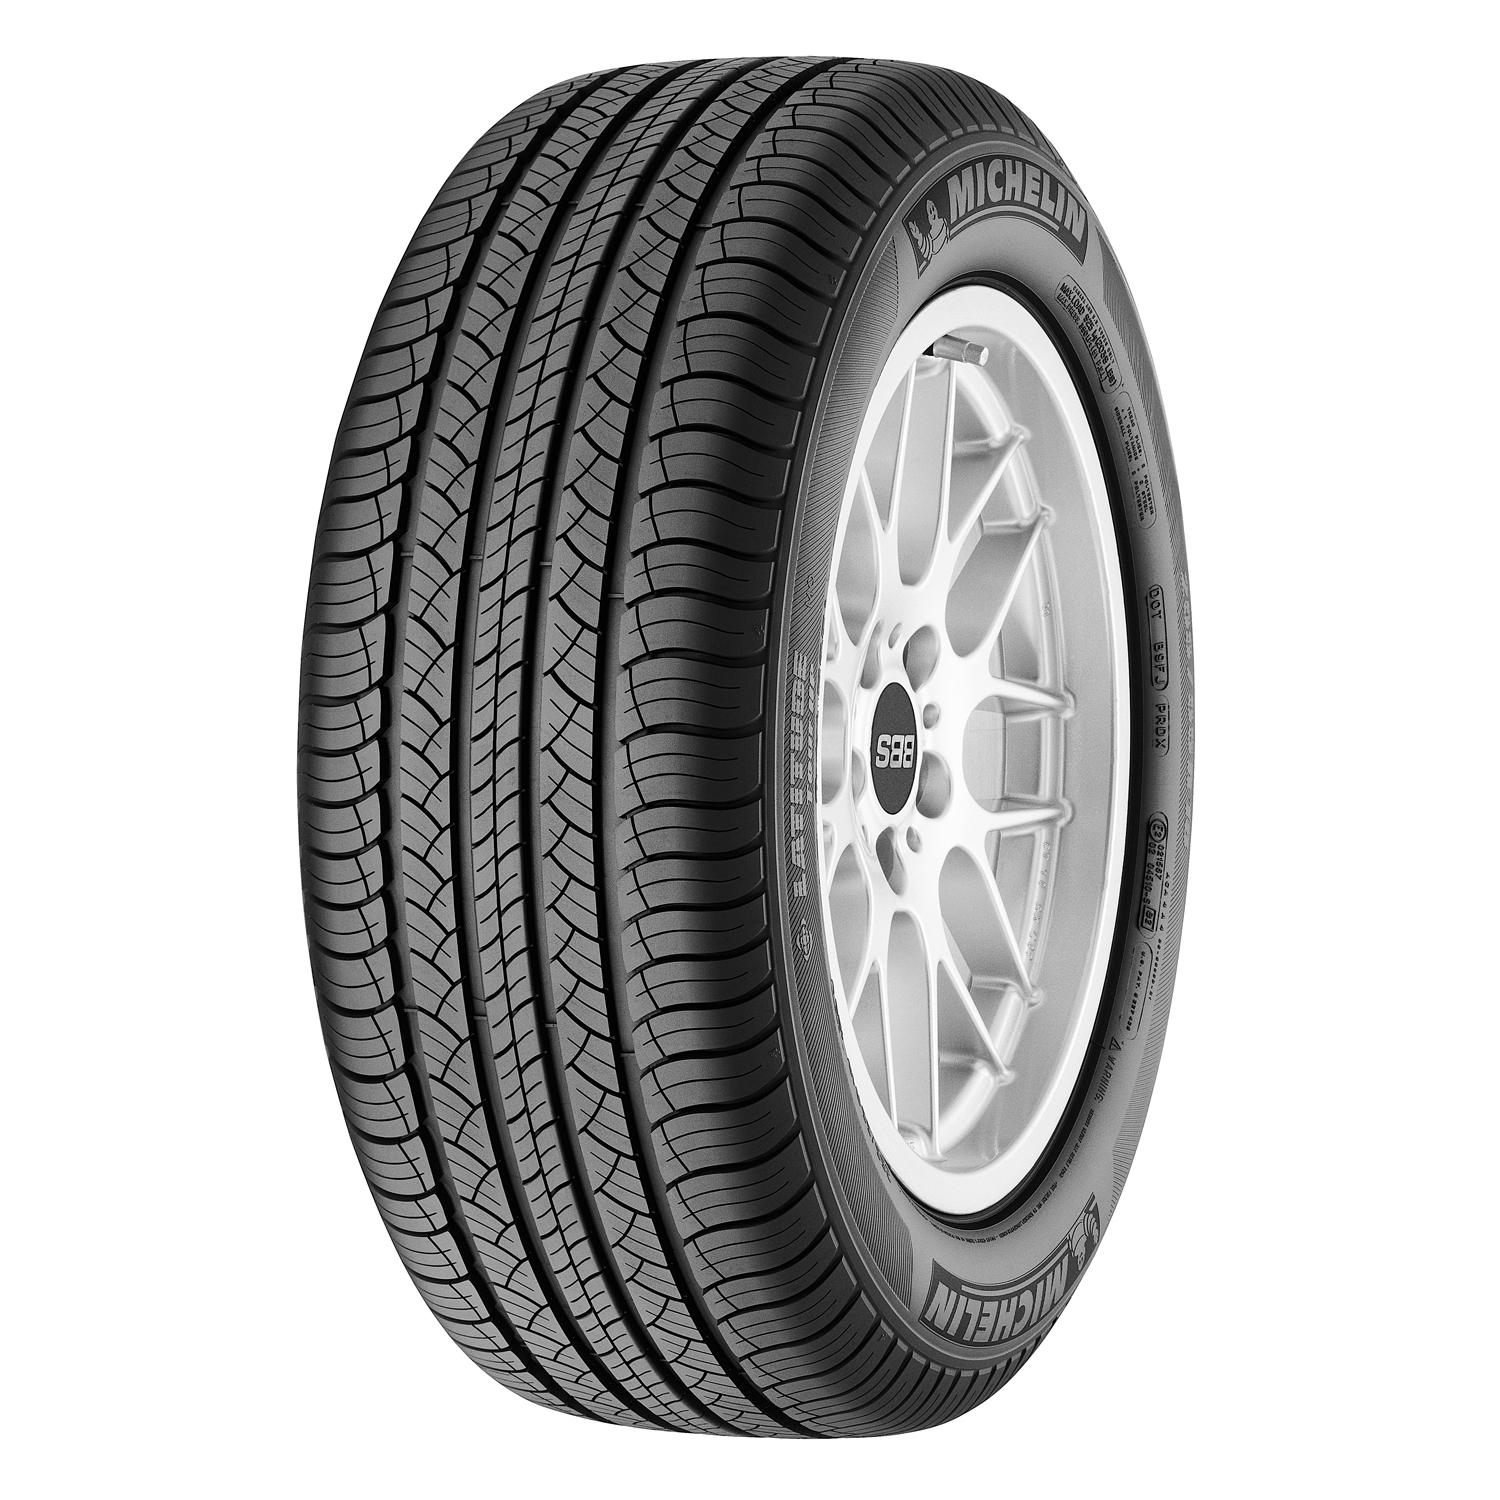 Latitude Tour HP - 285/60R18 115V BW - All Season Tire